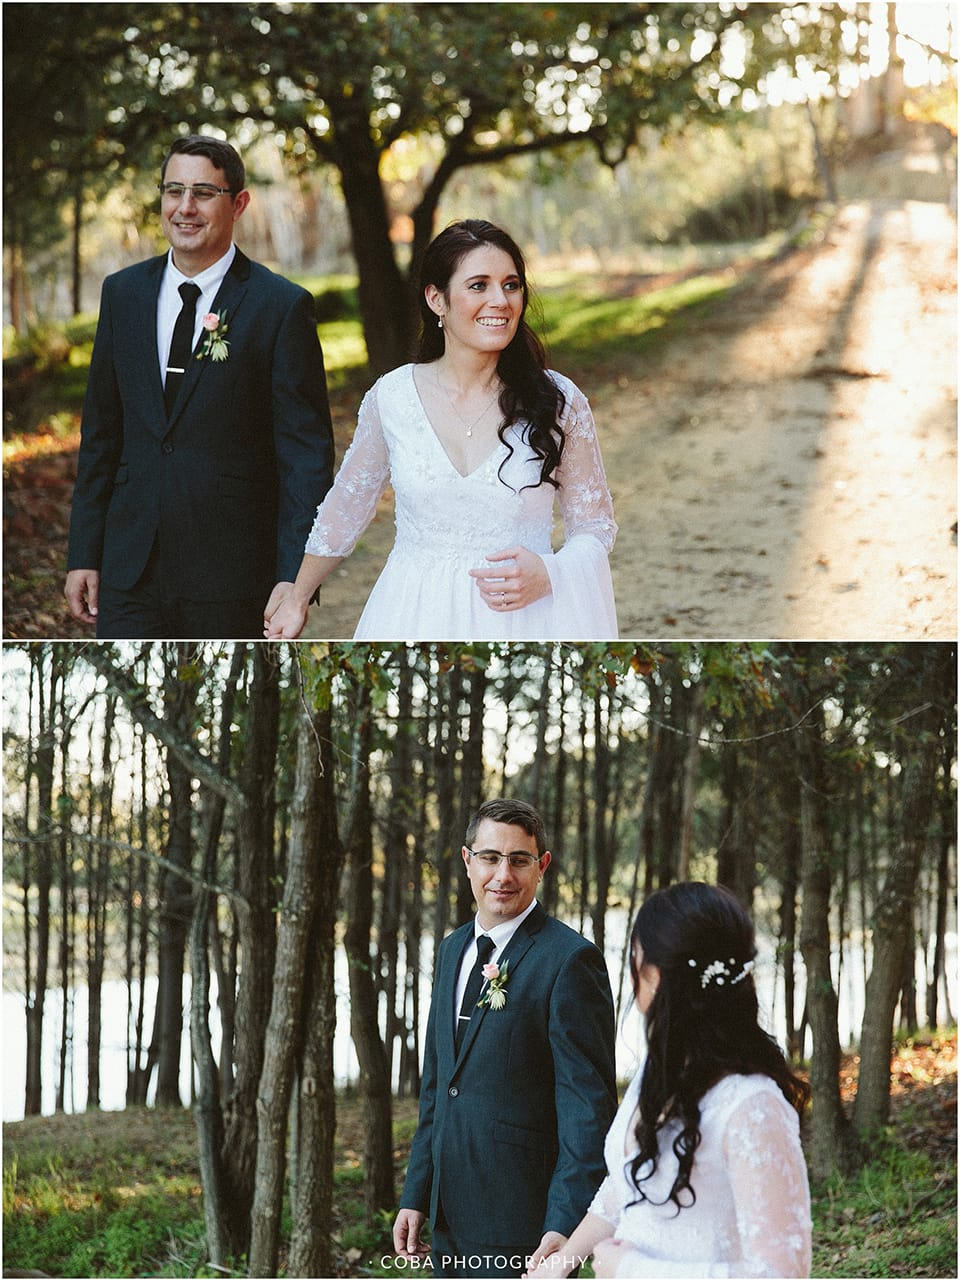 Carlo & Nicolette - Langkloof Roses - Coba Photography (144)